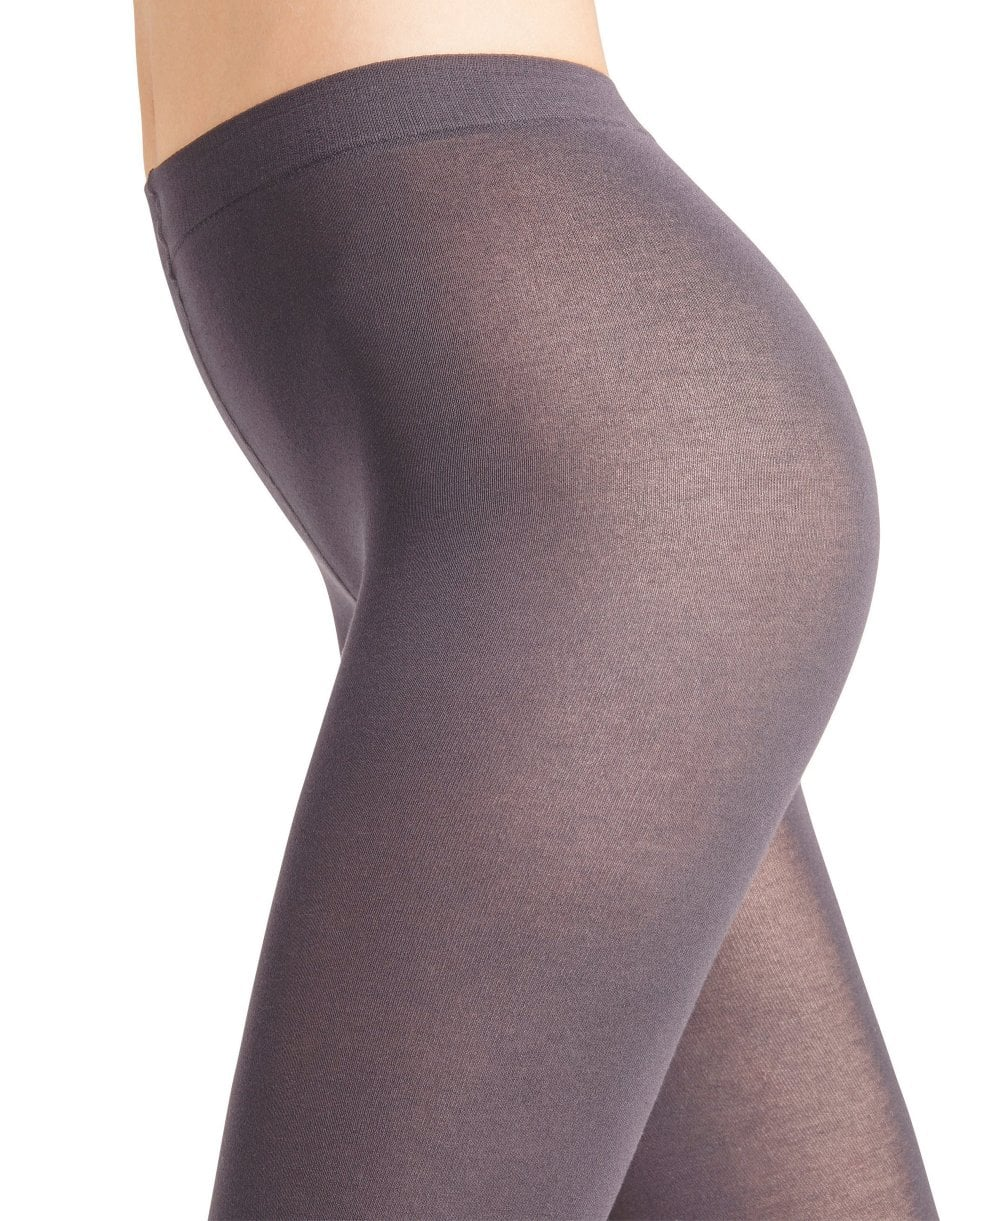 abdb486c88b Falke Cotton Touch Tights - Tights from luxury-legs.com UK